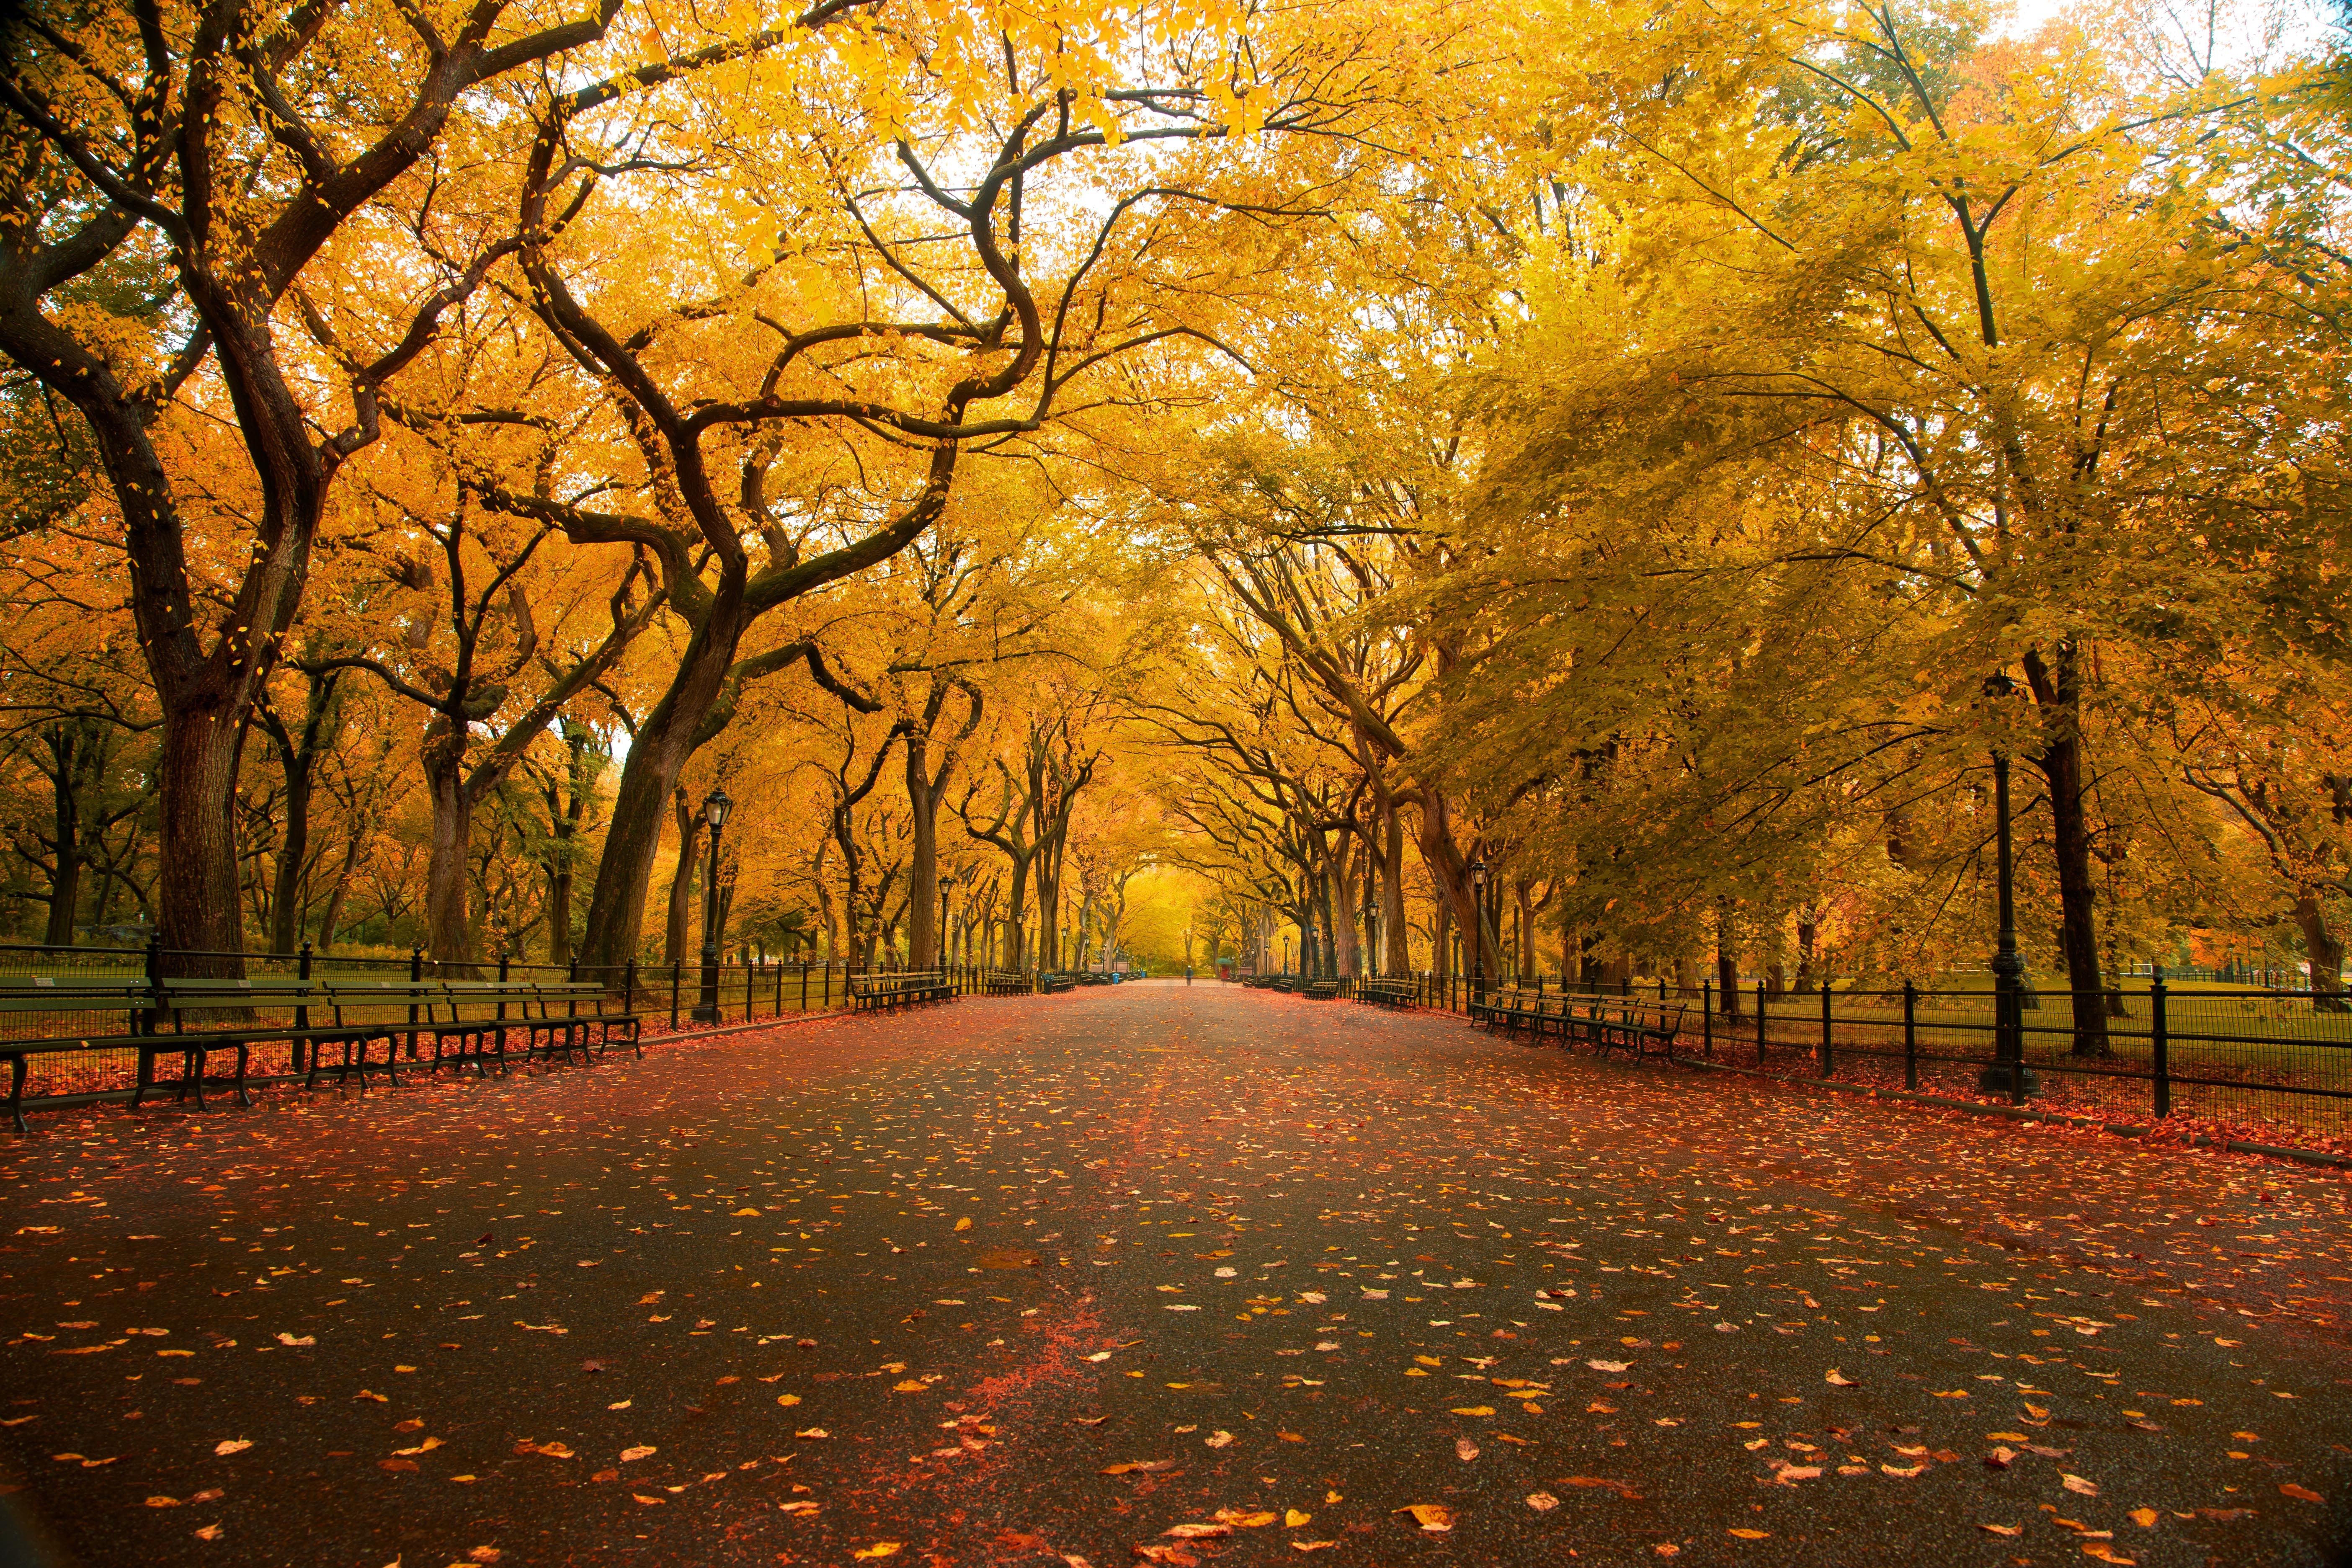 10 Autumn Quotes To Get You Excited About The First Day Of Fall